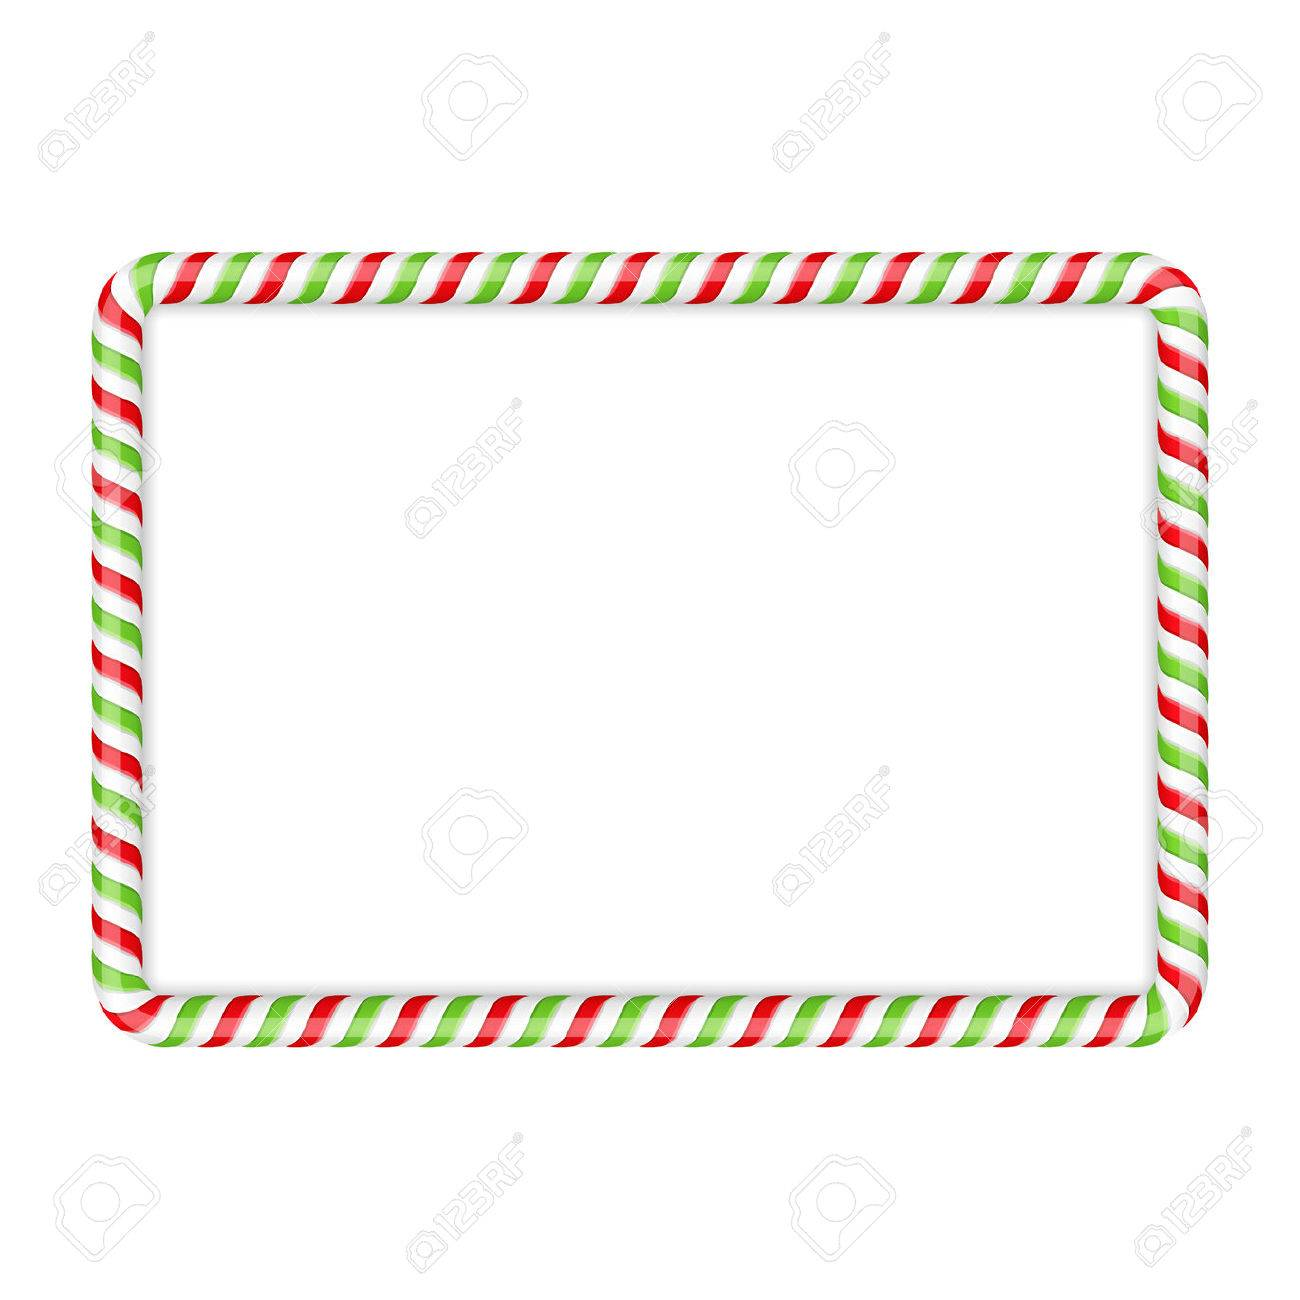 hight resolution of frame made of candy cane red and green colors stock vector 47242209